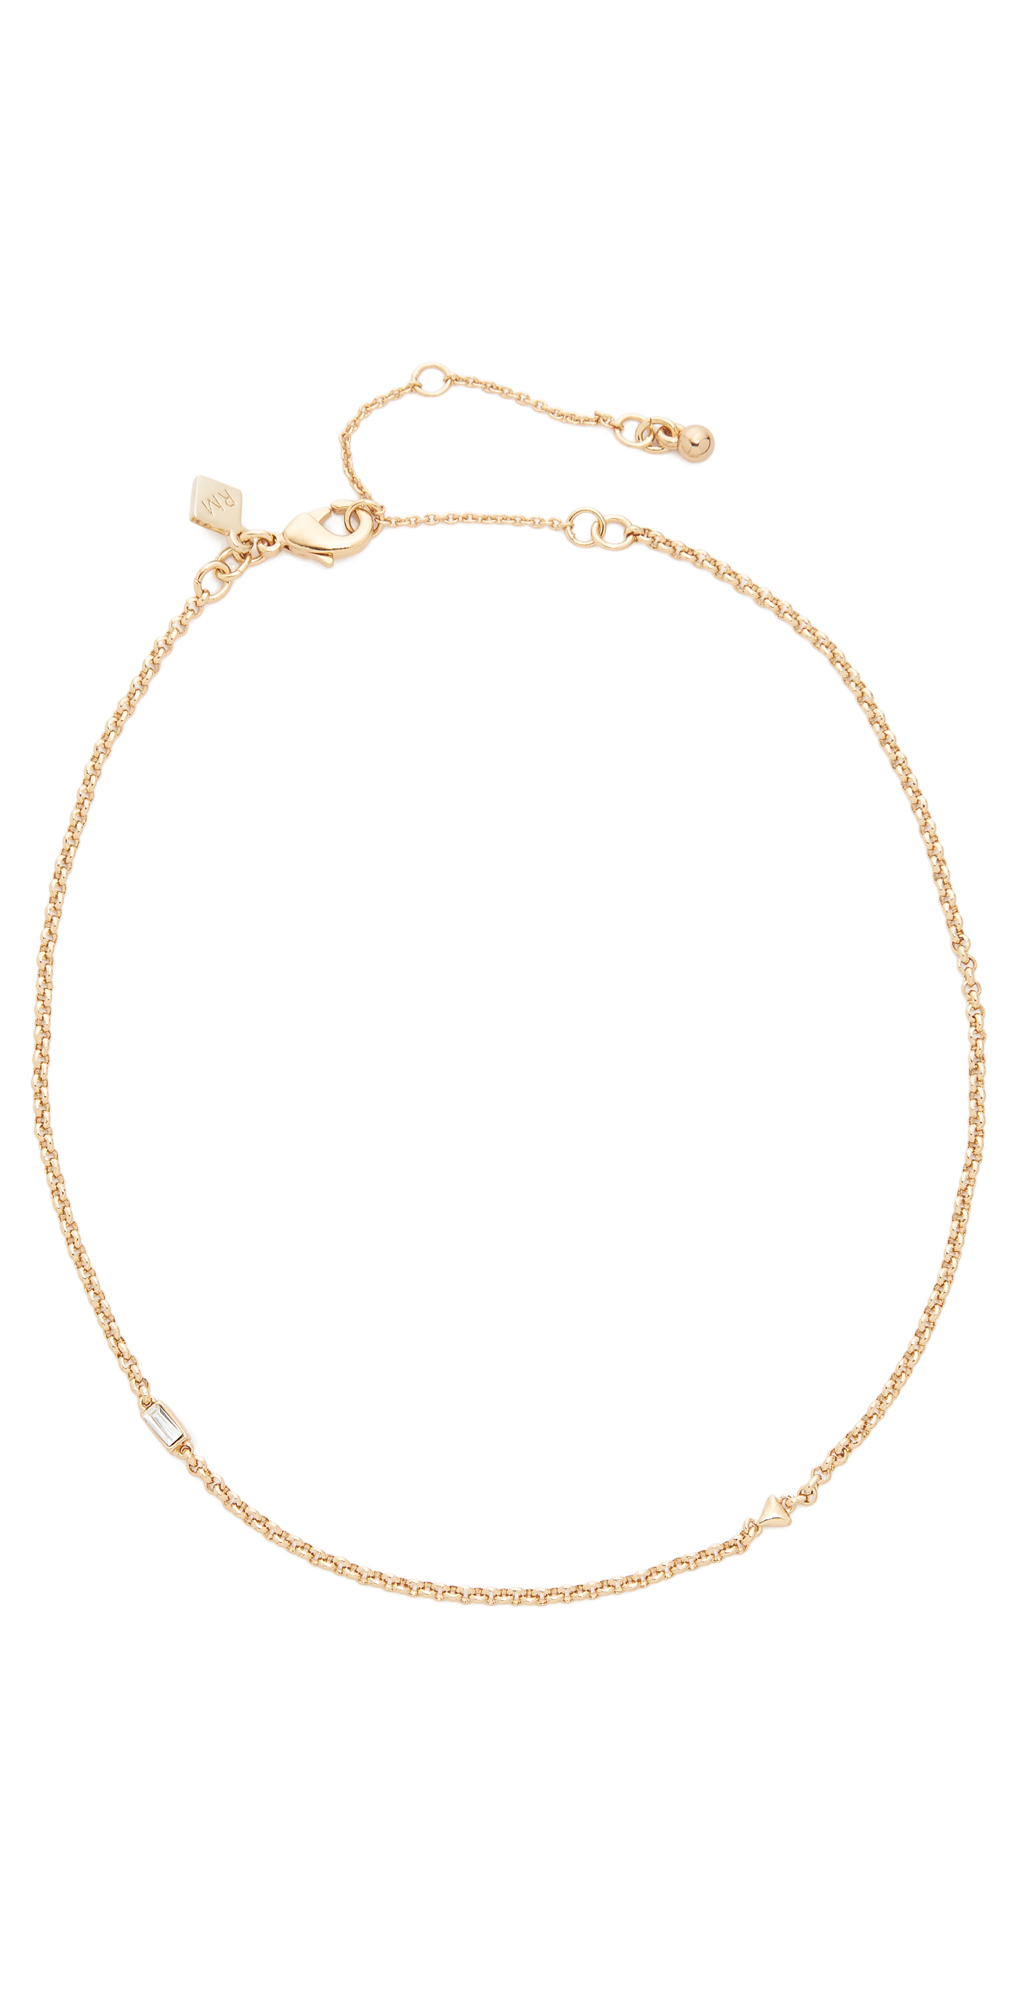 Baguette Stone Chain Choker Necklace Rebecca Minkoff